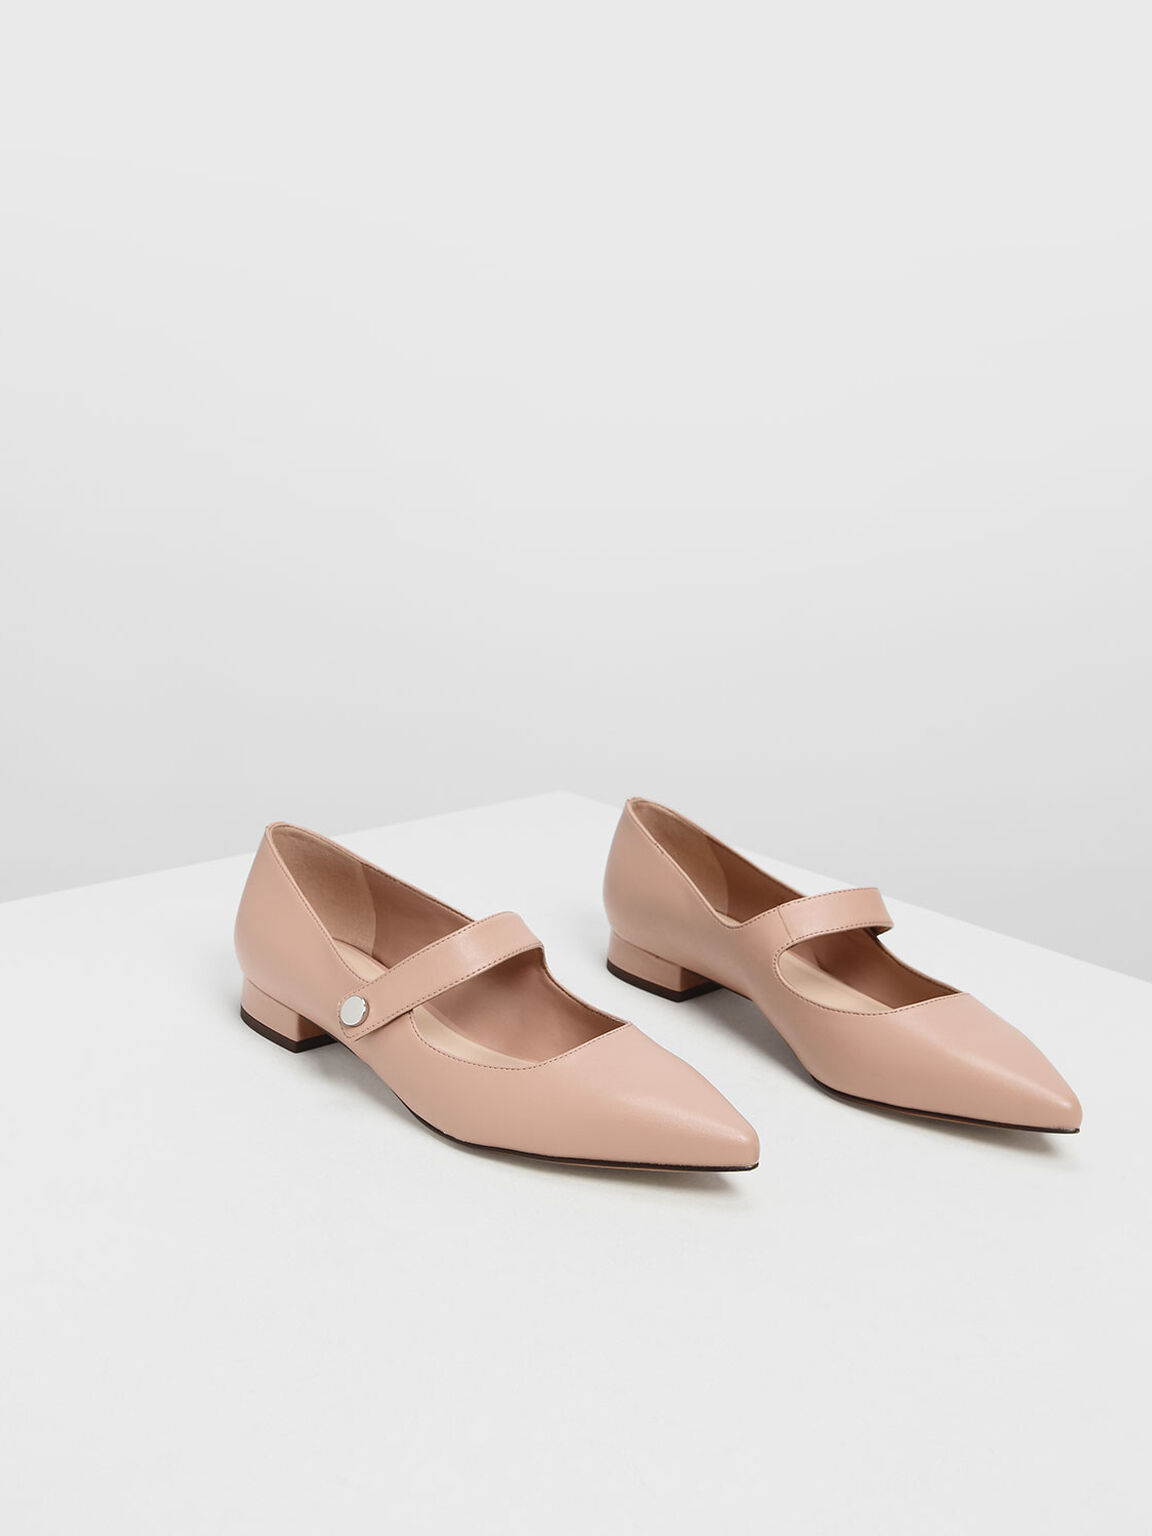 Pointed Toe Mary Janes, Nude, hi-res